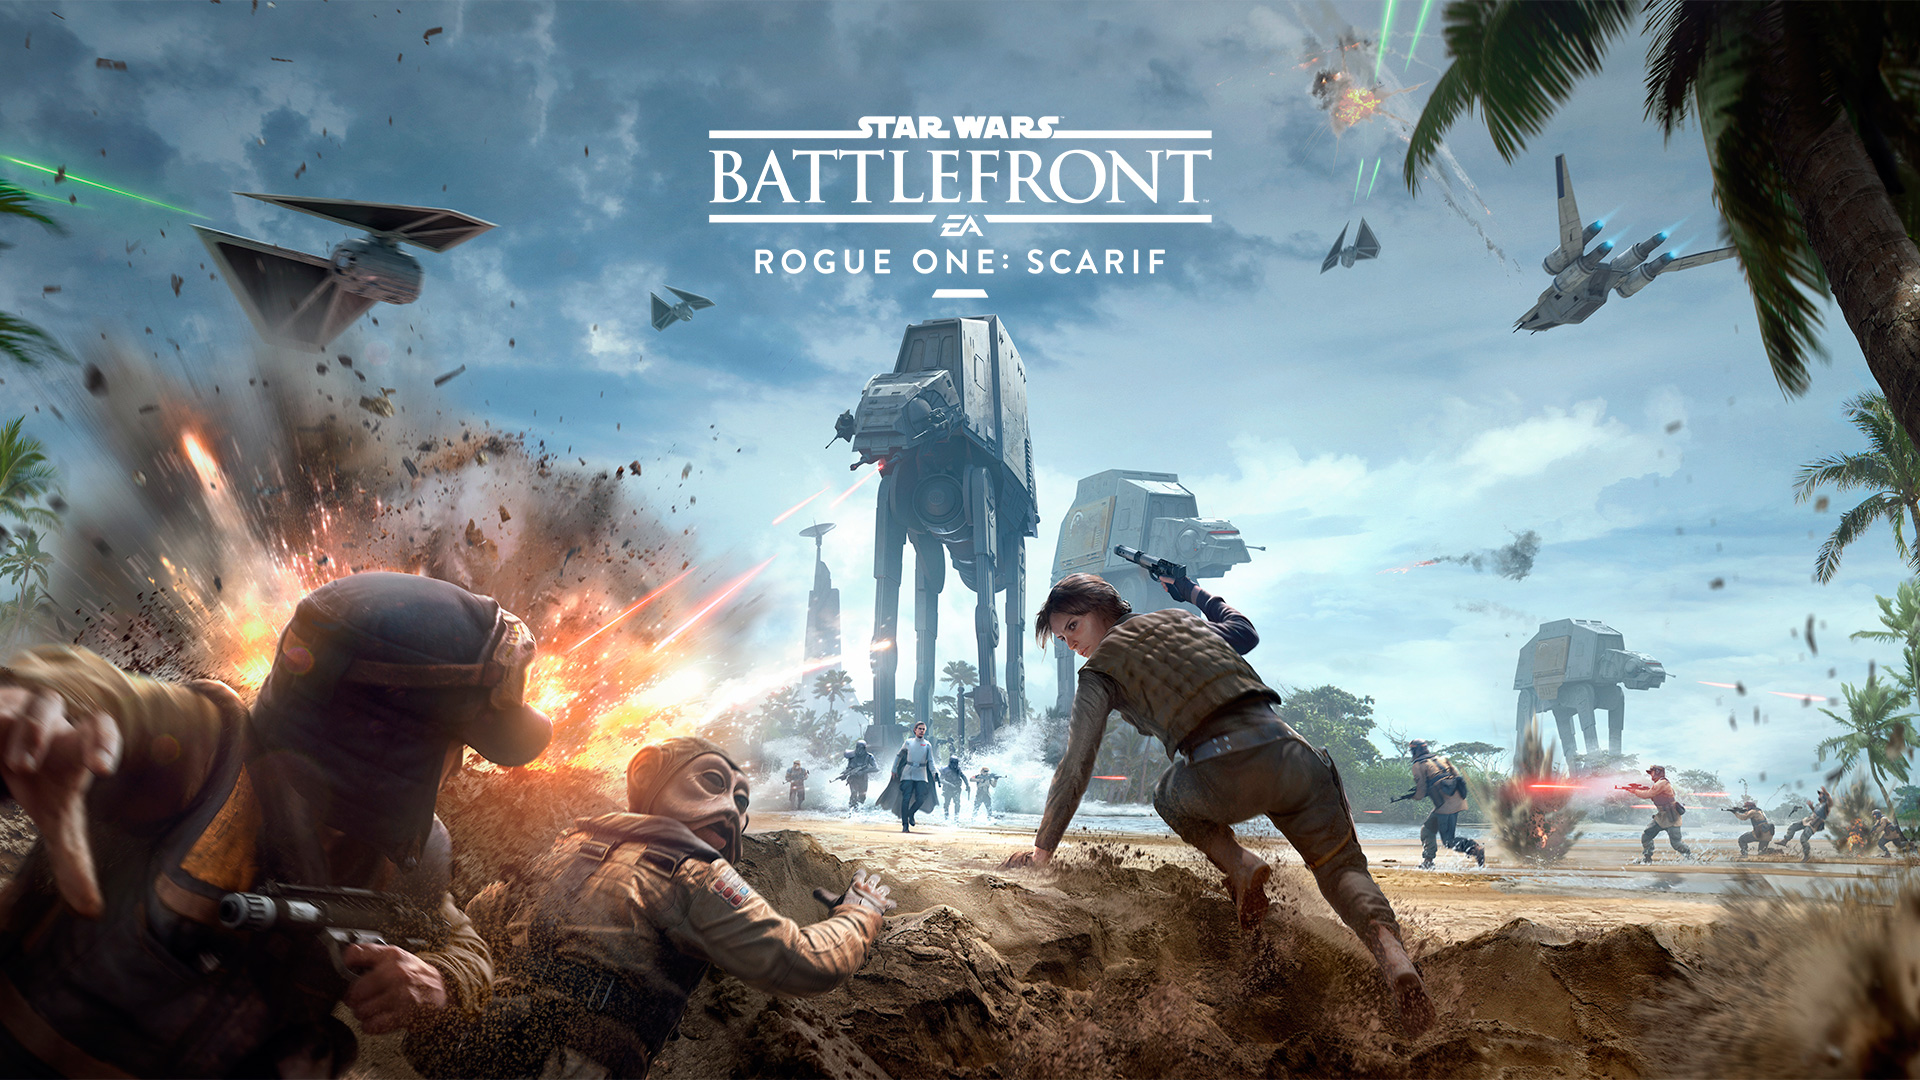 star wars battlefront 1 year anniversary - star wars - official ea